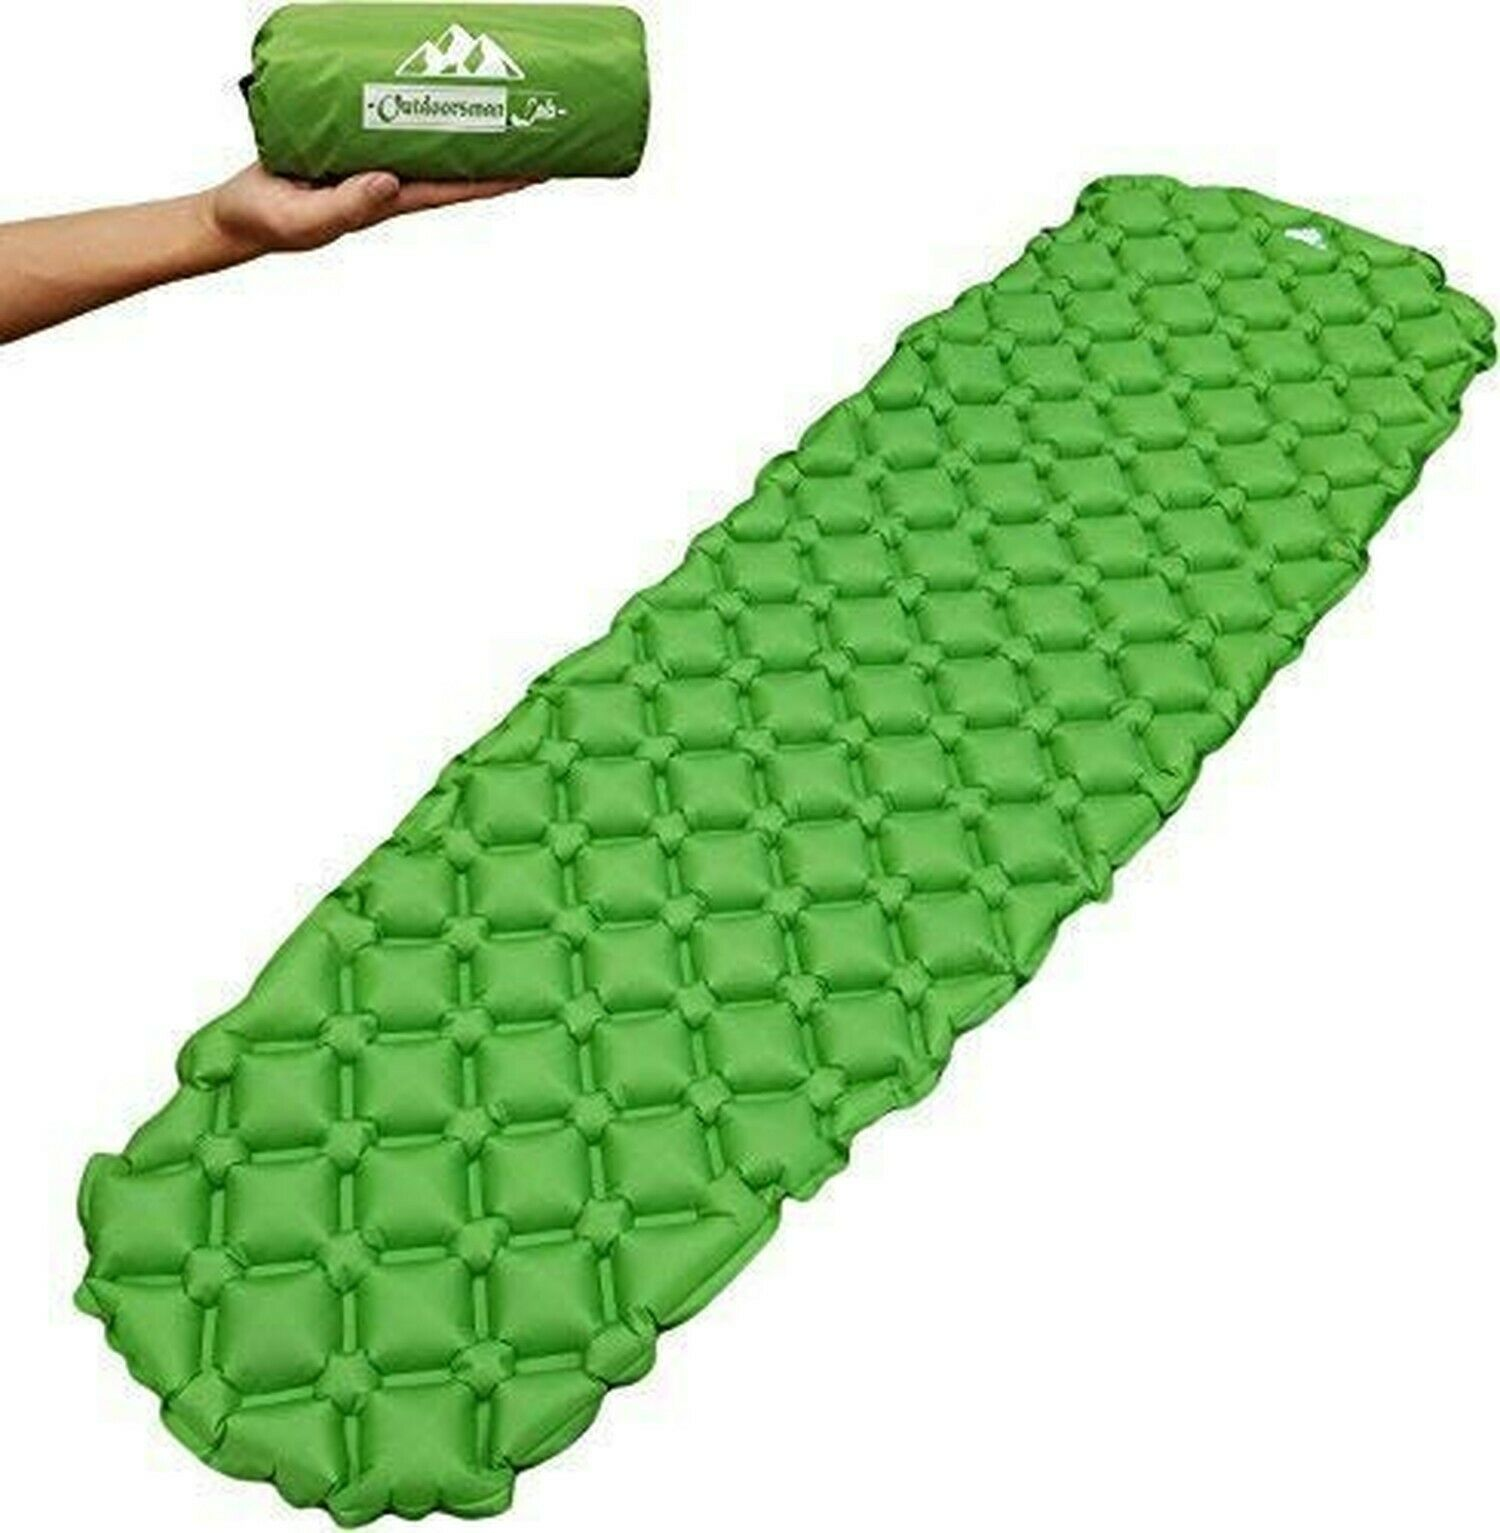 Outdoorsman Lab  Camping Accessories – 73  x 21.6  x 2.2  Inflatable Sleeping ...  100% genuine counter guarantee